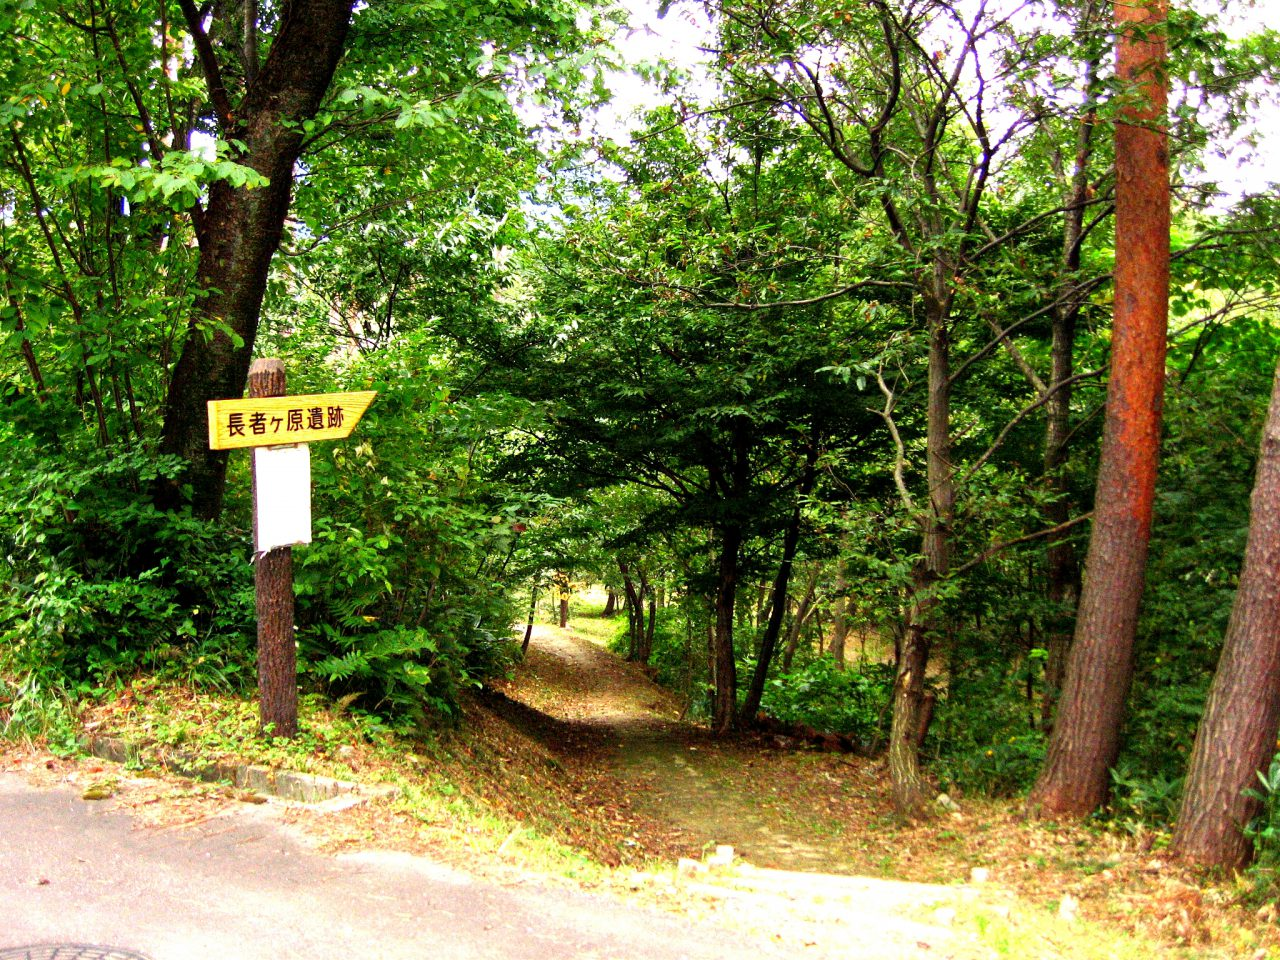 Forested Entrance to the Chojagahara Archaeological Park